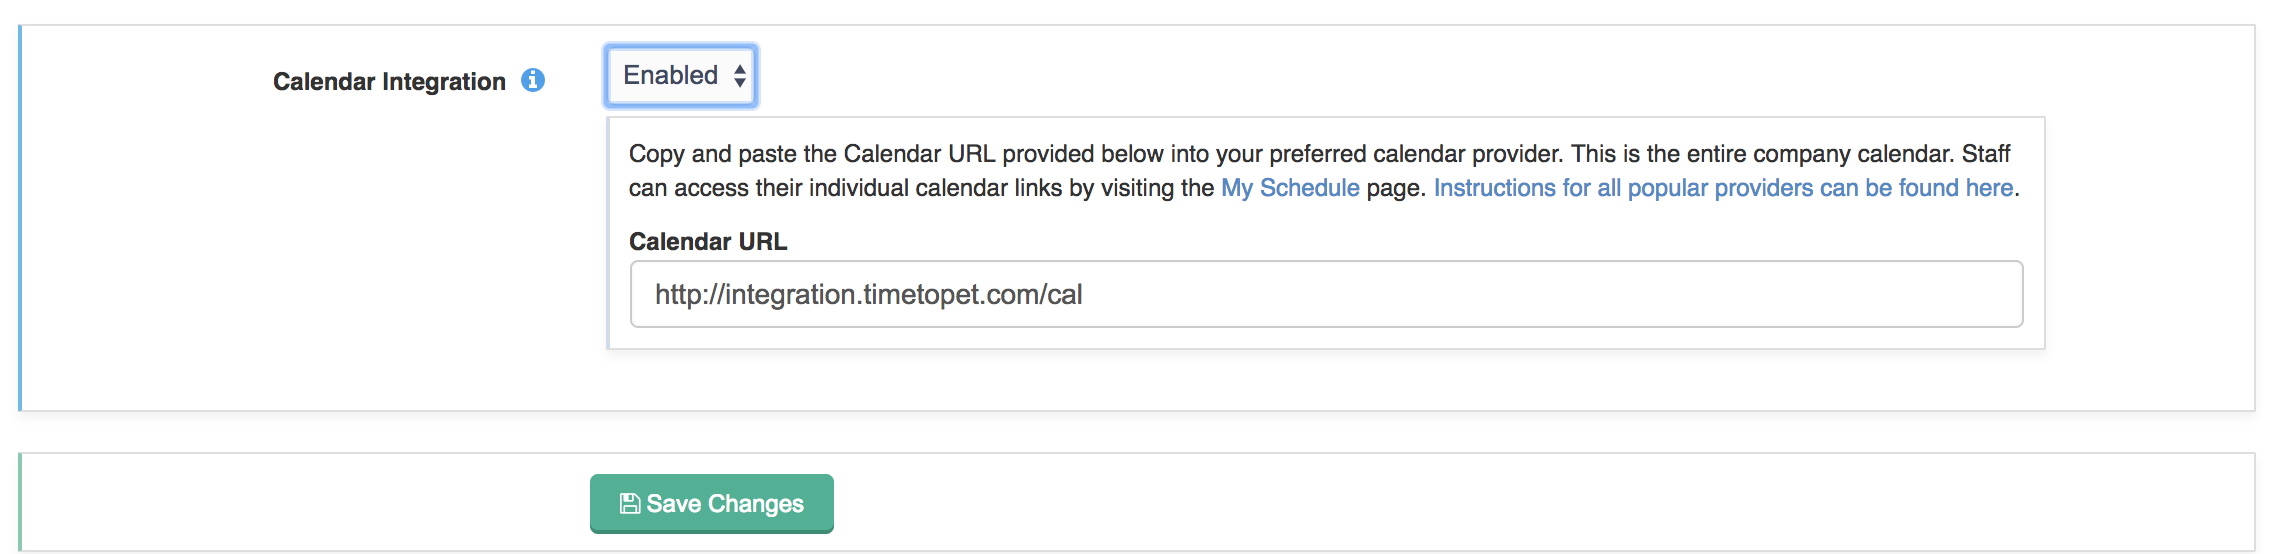 Image showing Calendar Integration enabled with new Company Calendar URL